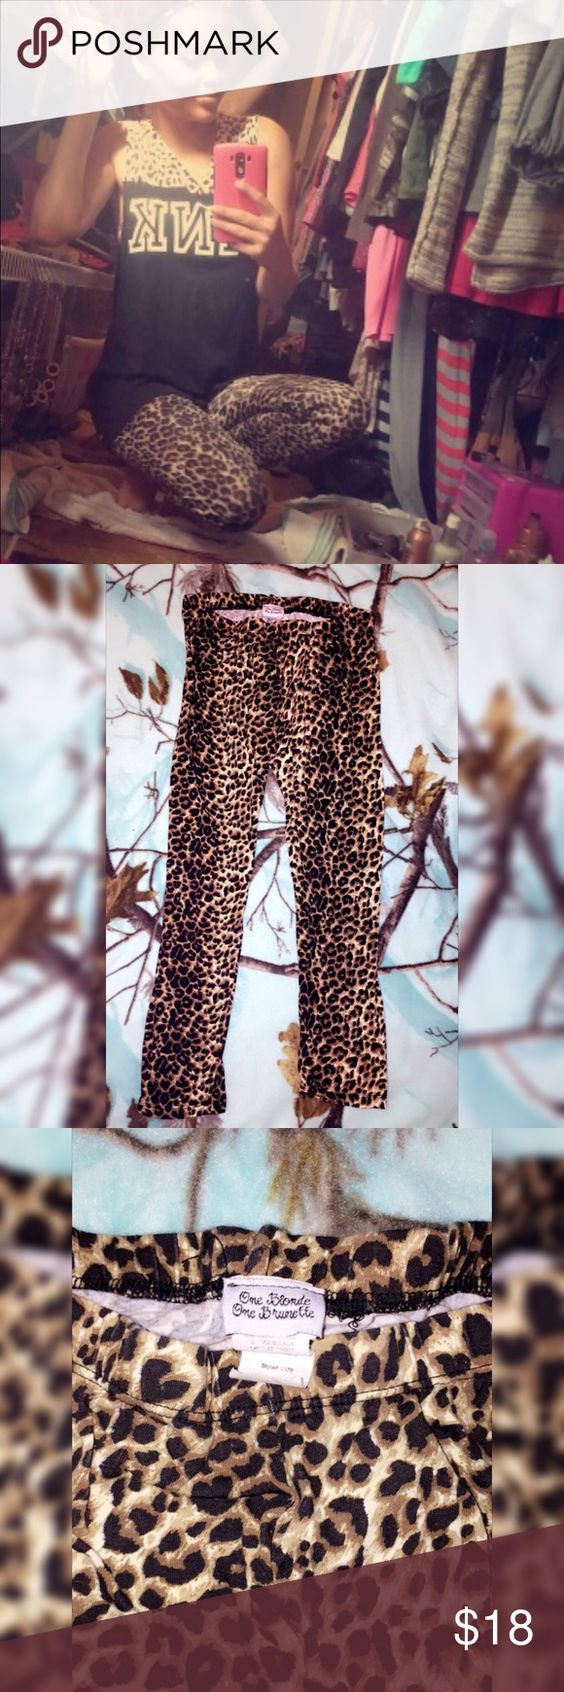 Cheetah leggings Cute cheetah leggings from one blonde one brunette, very comfy and stretchy , in great condition One blonde one brunette  Pants Leggings